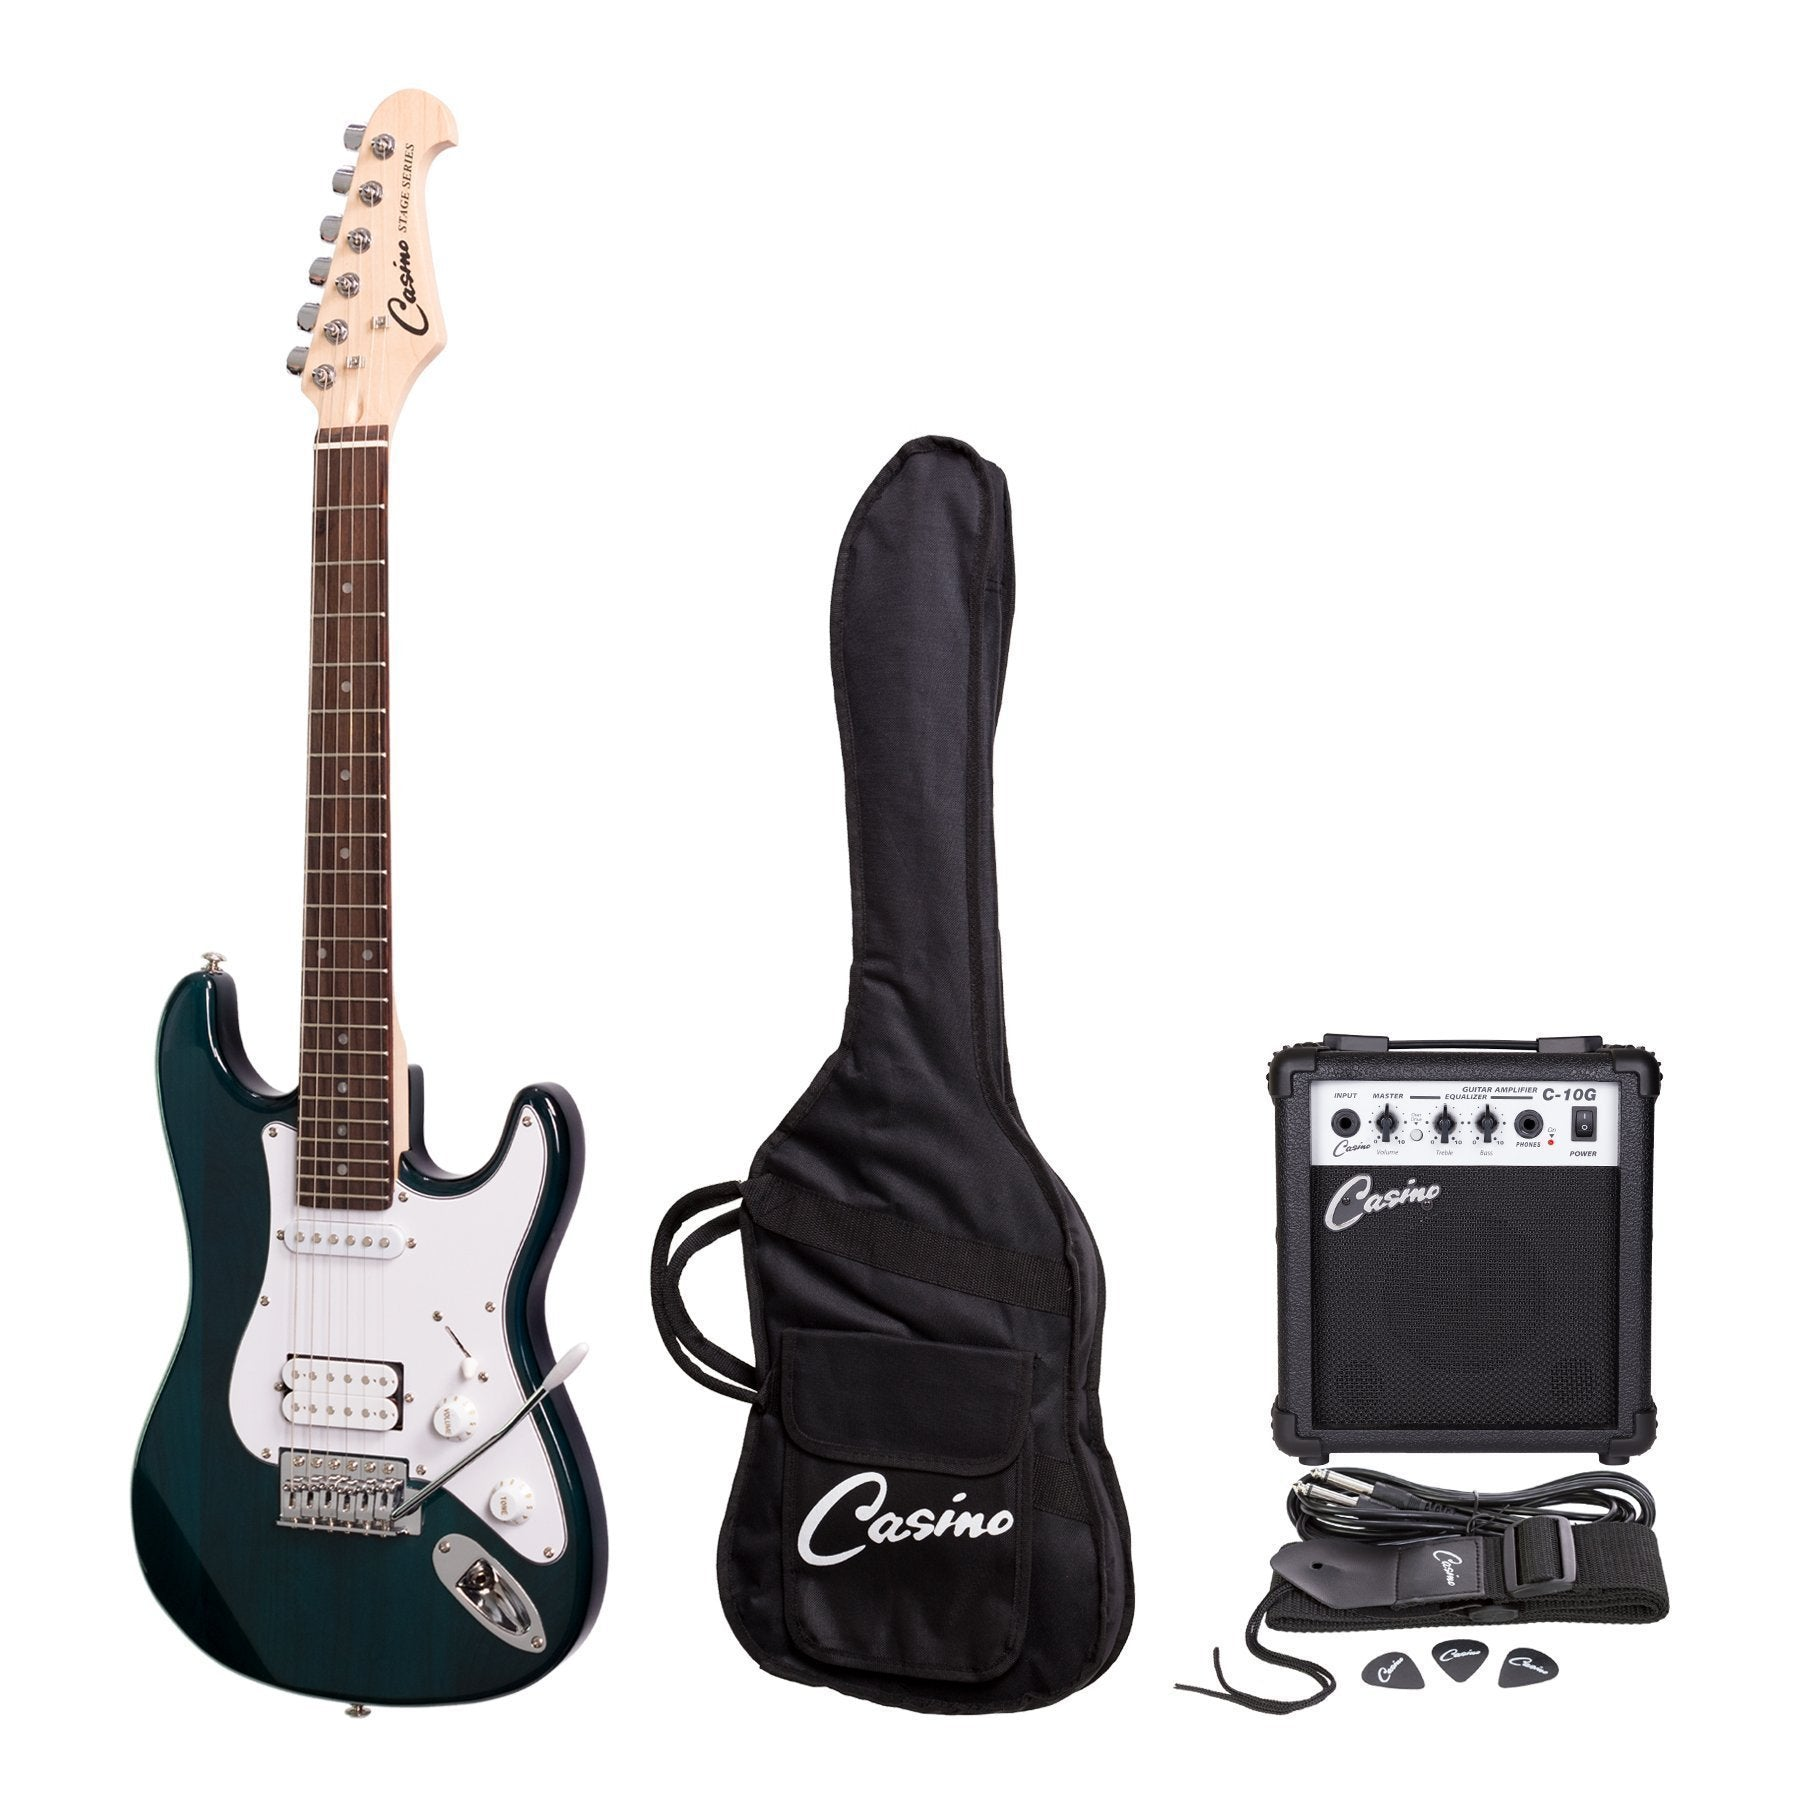 Casino ST-Style 3/4 Size Electric Guitar and 10 Watt Amplifier Pack (Transparent Blue)